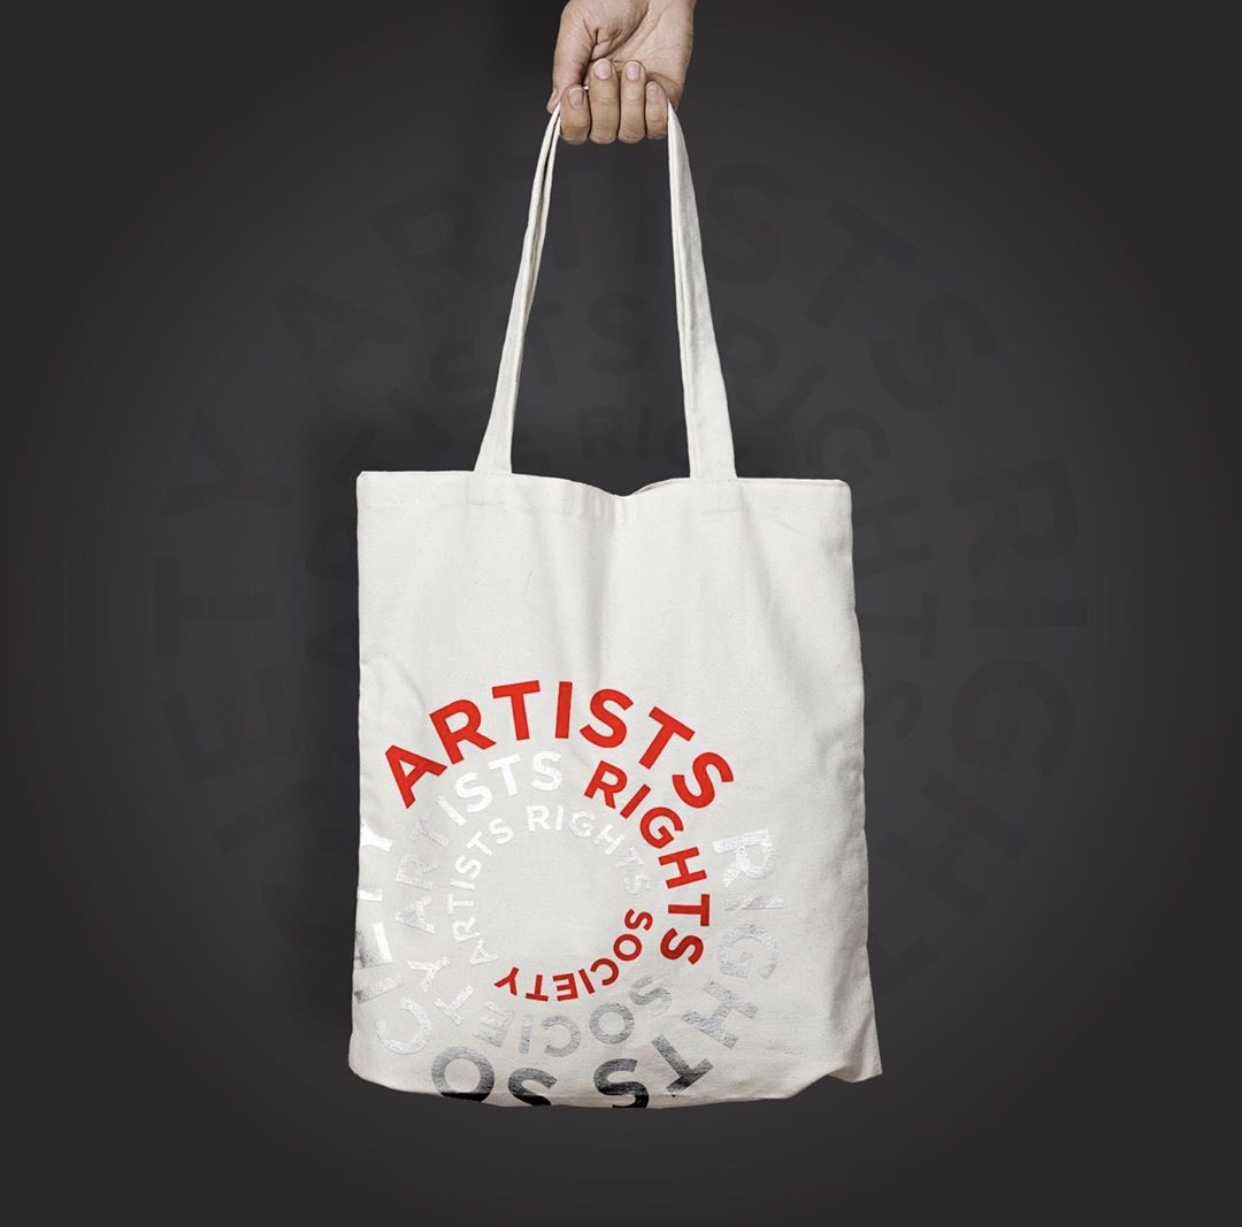 Hand holding a tote bag with the ARS logo